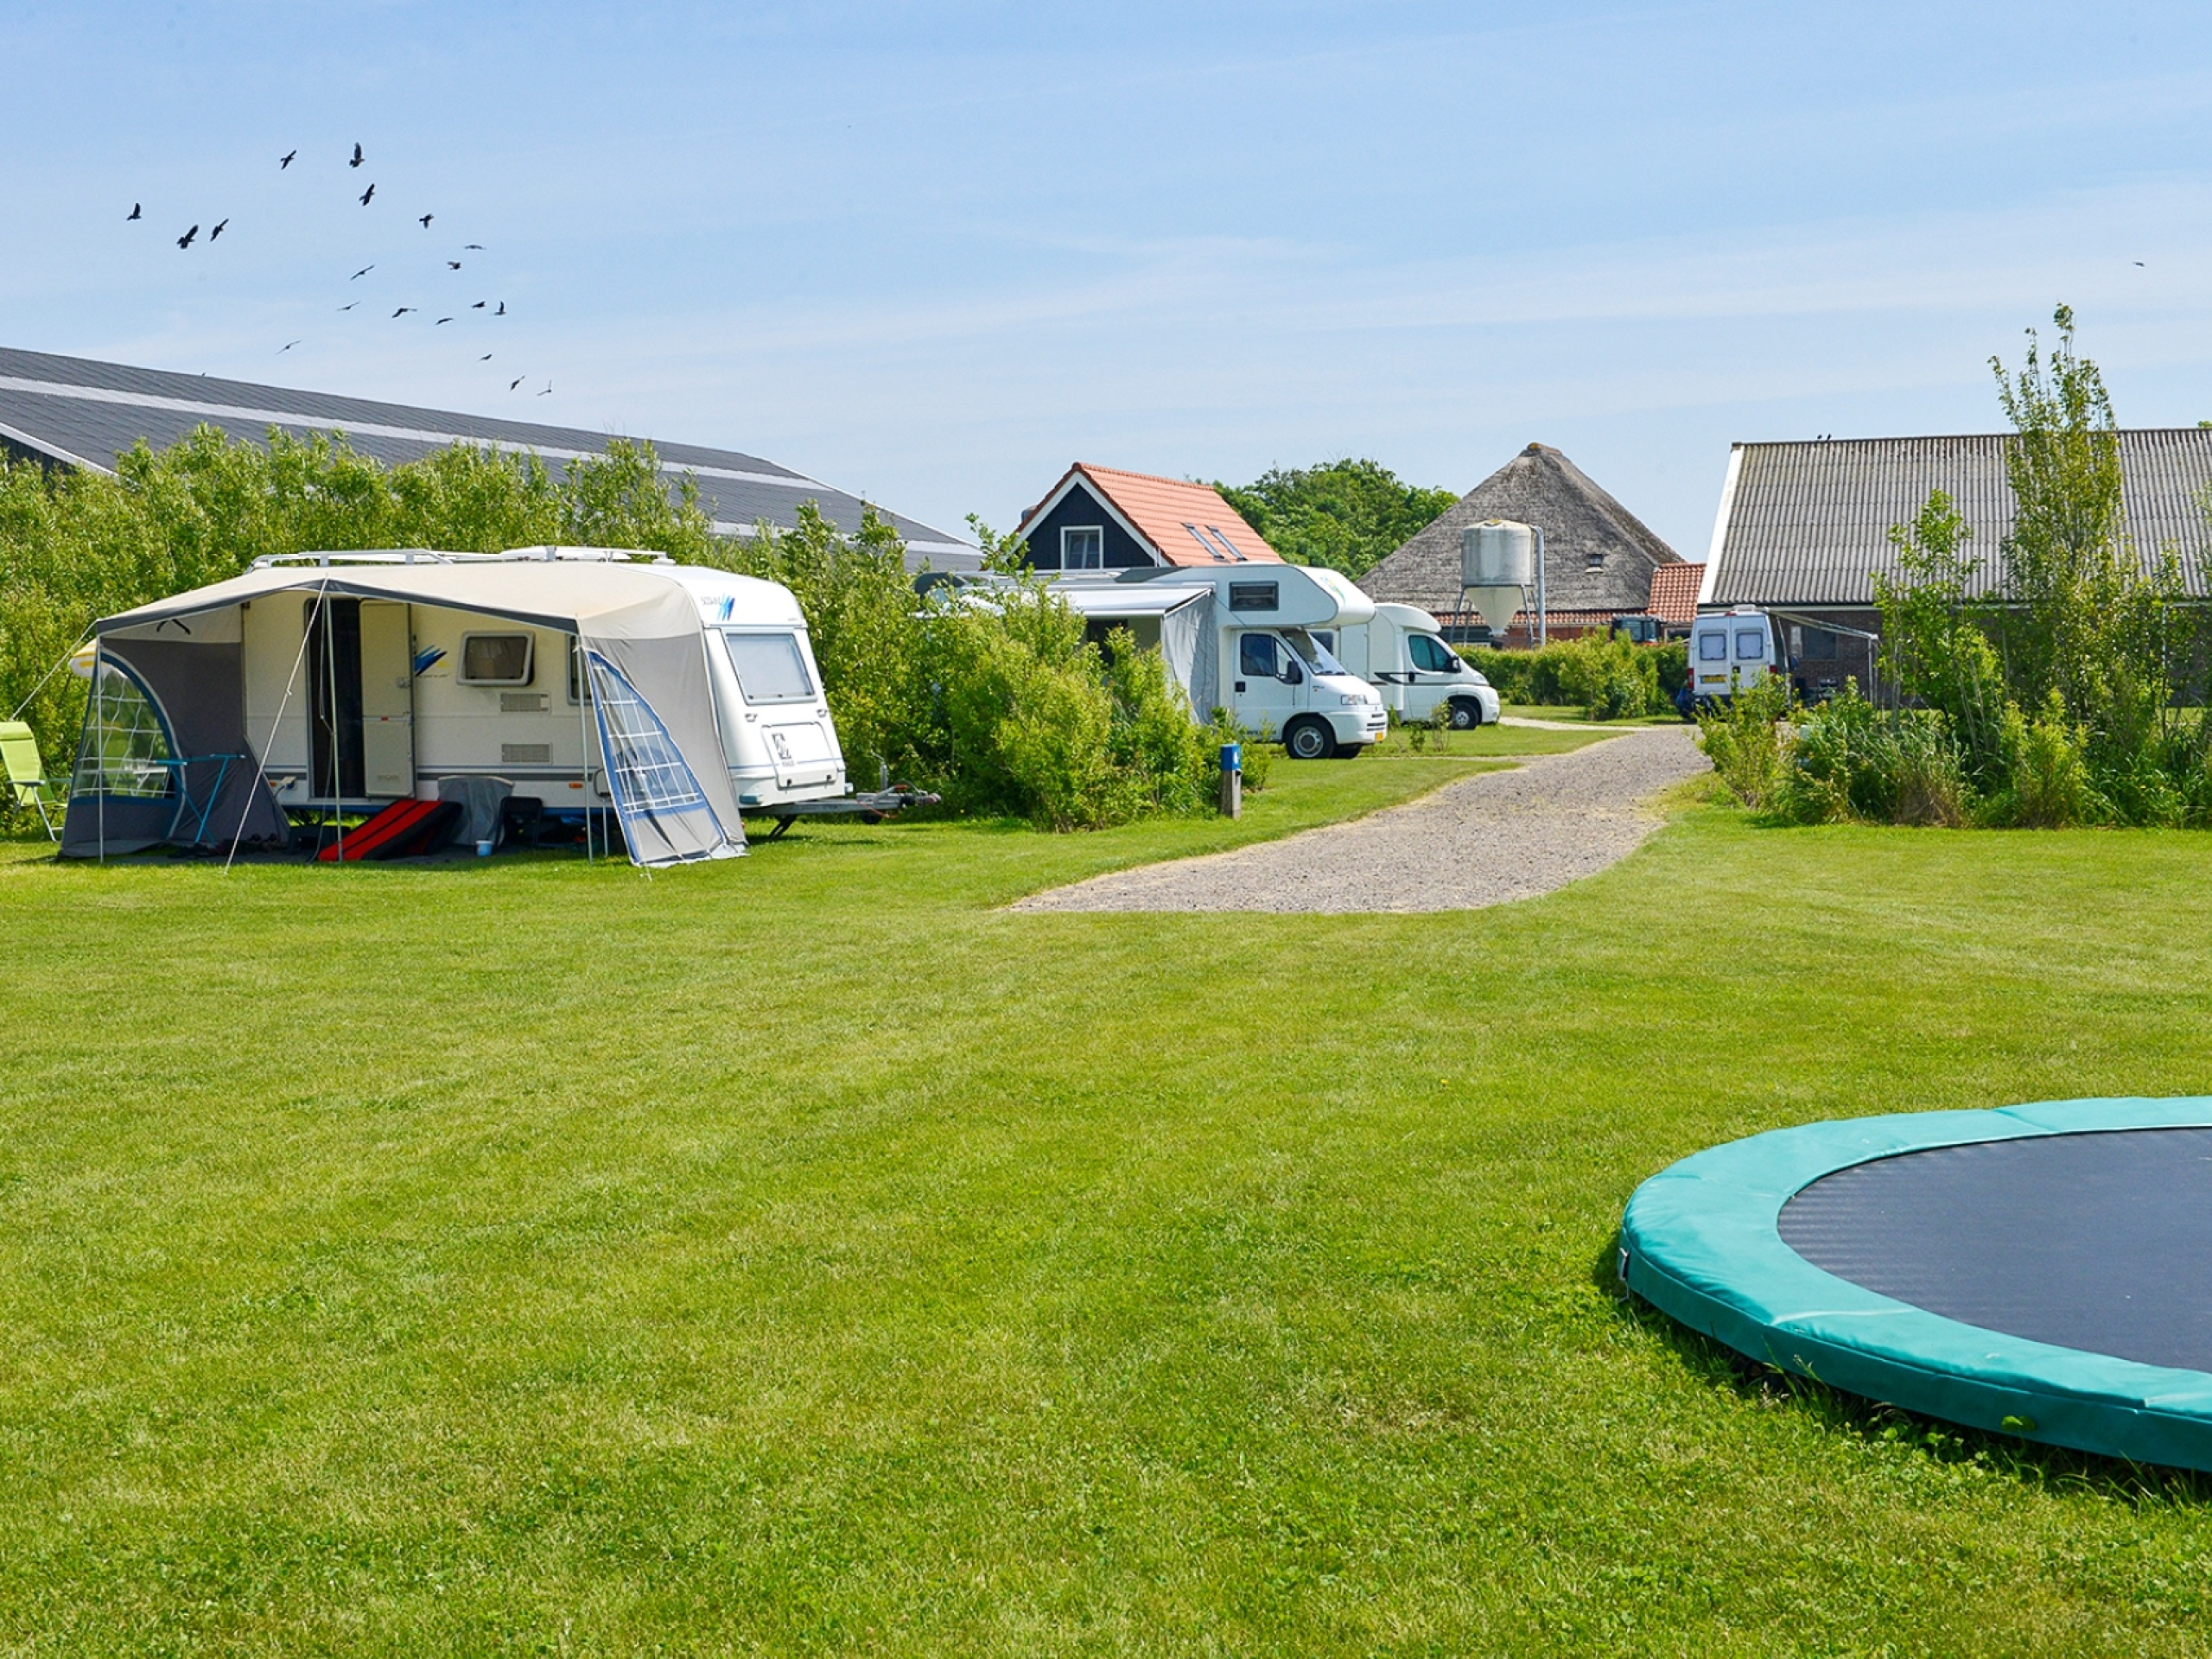 Camping with a tent or caravan on a farm site